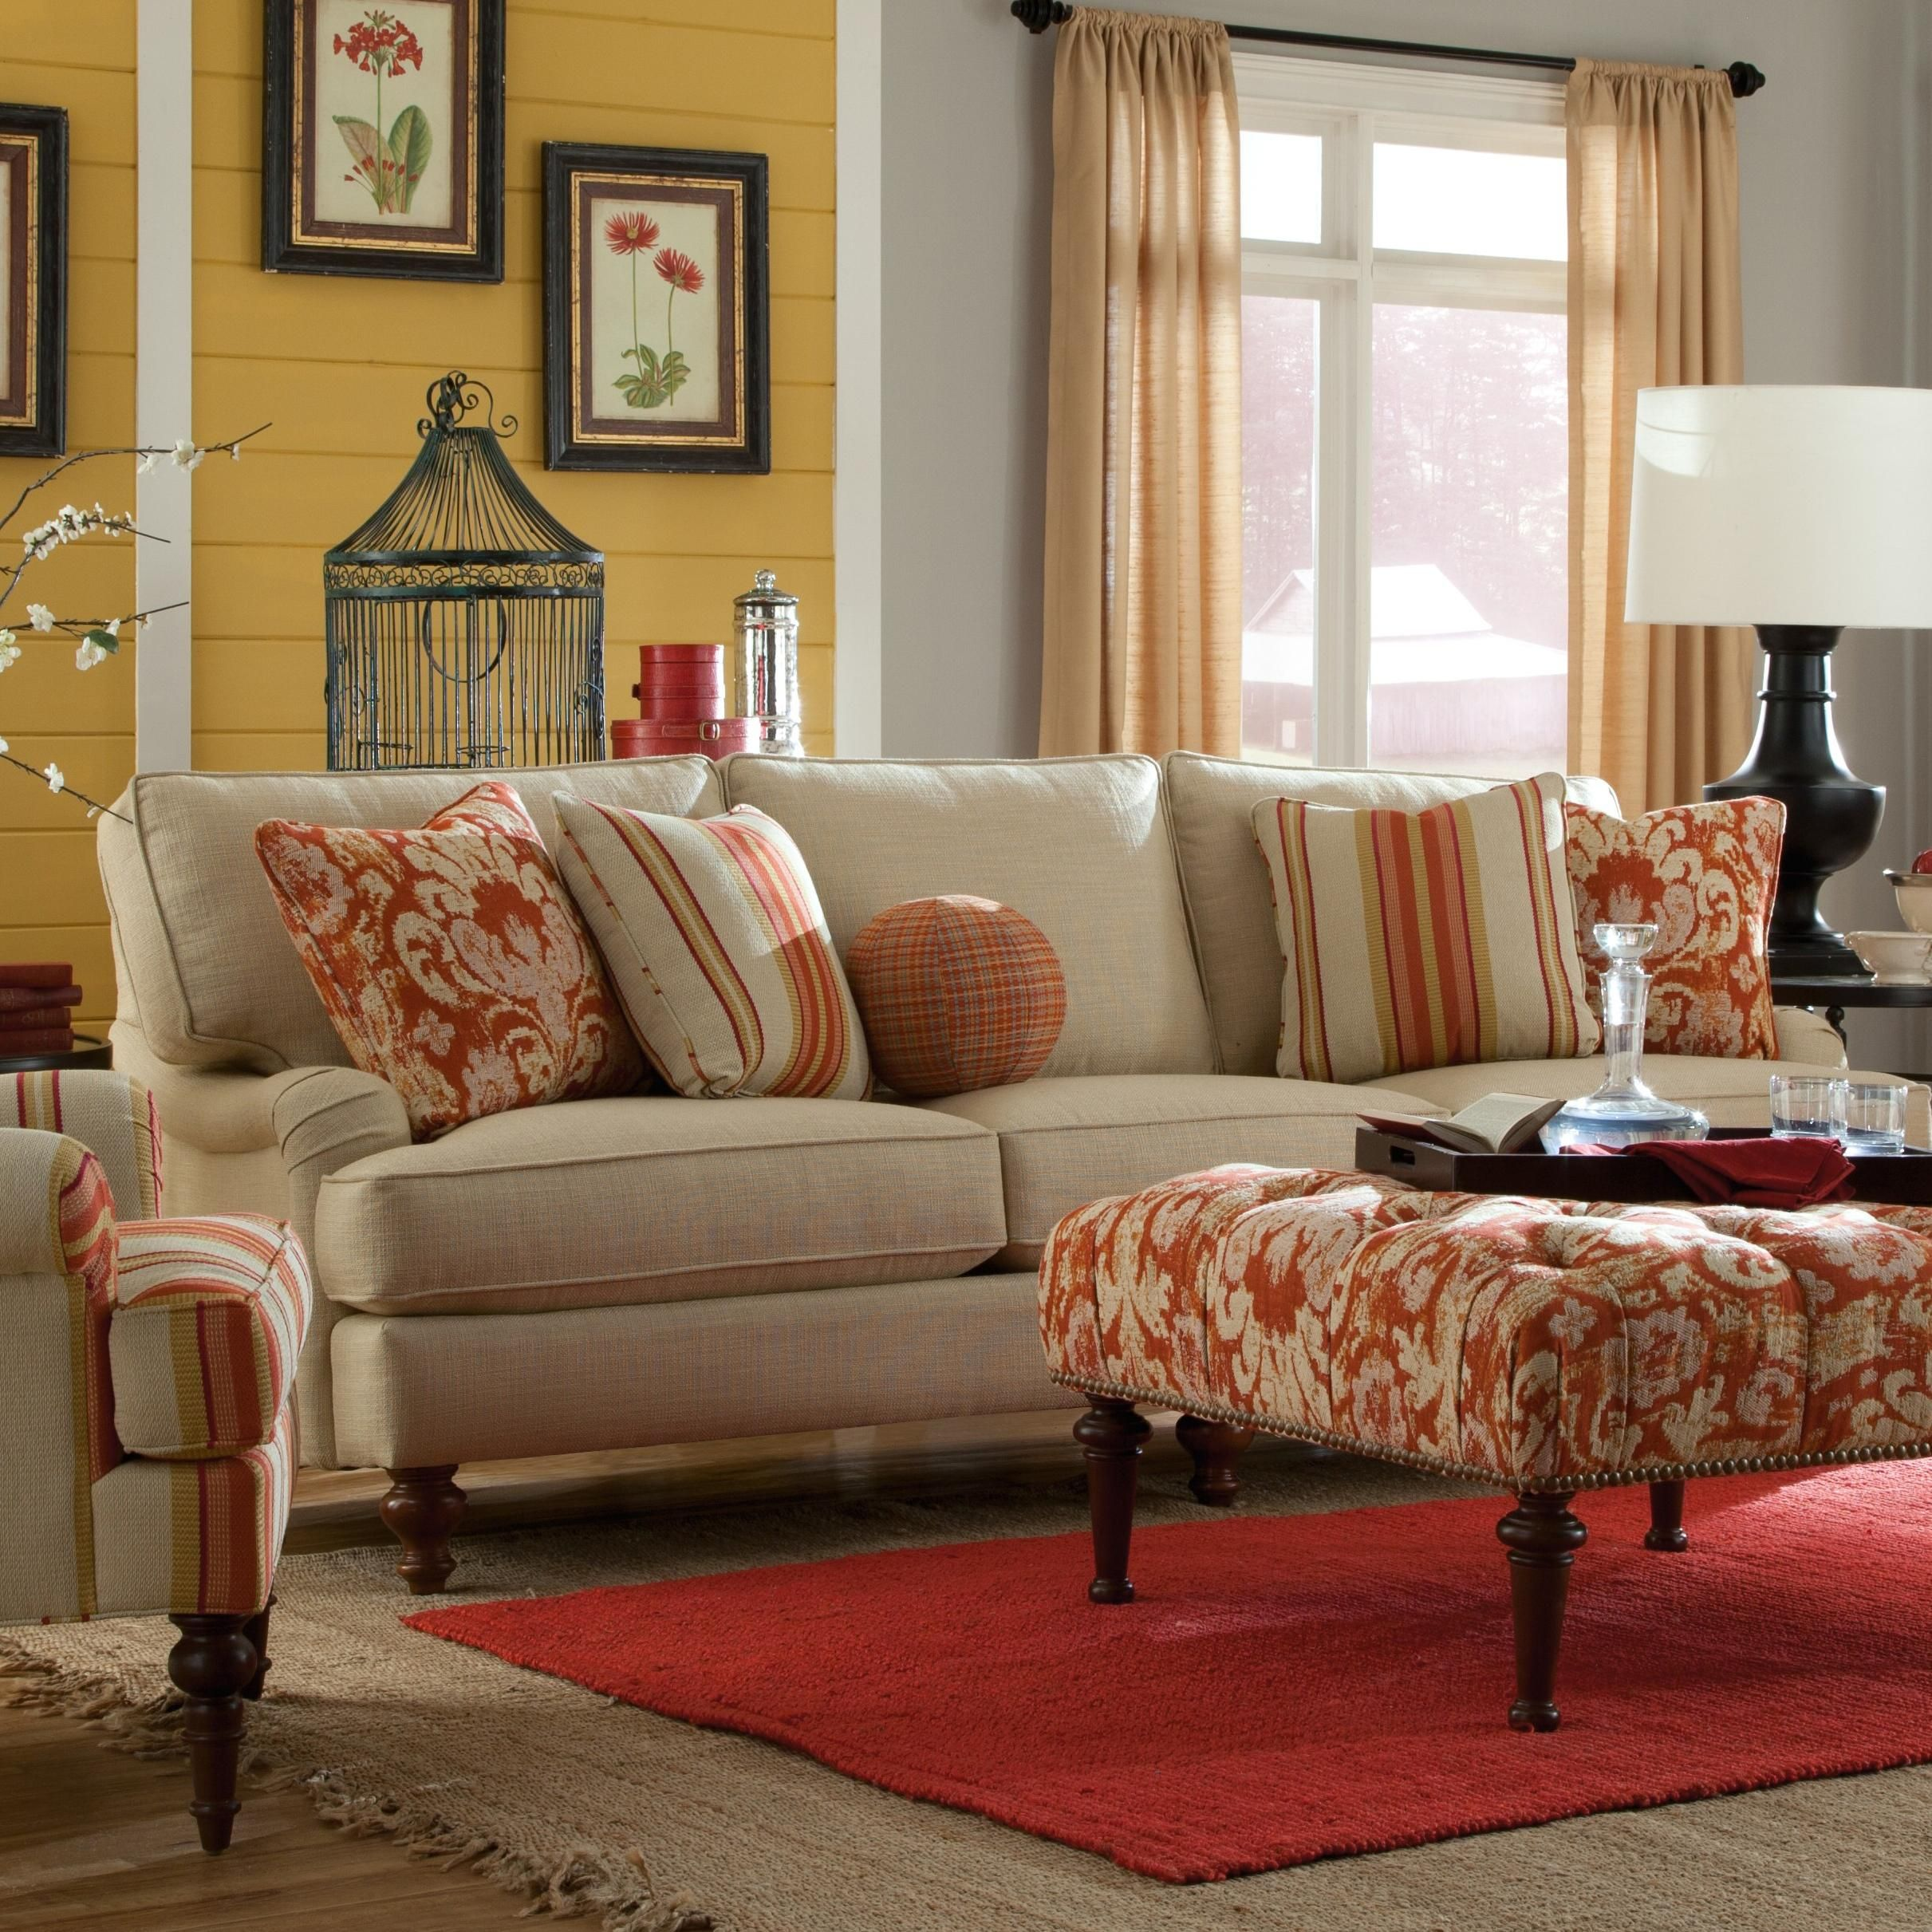 paula deen home living room furniture pics of modern rooms pinterest and sofa by universal